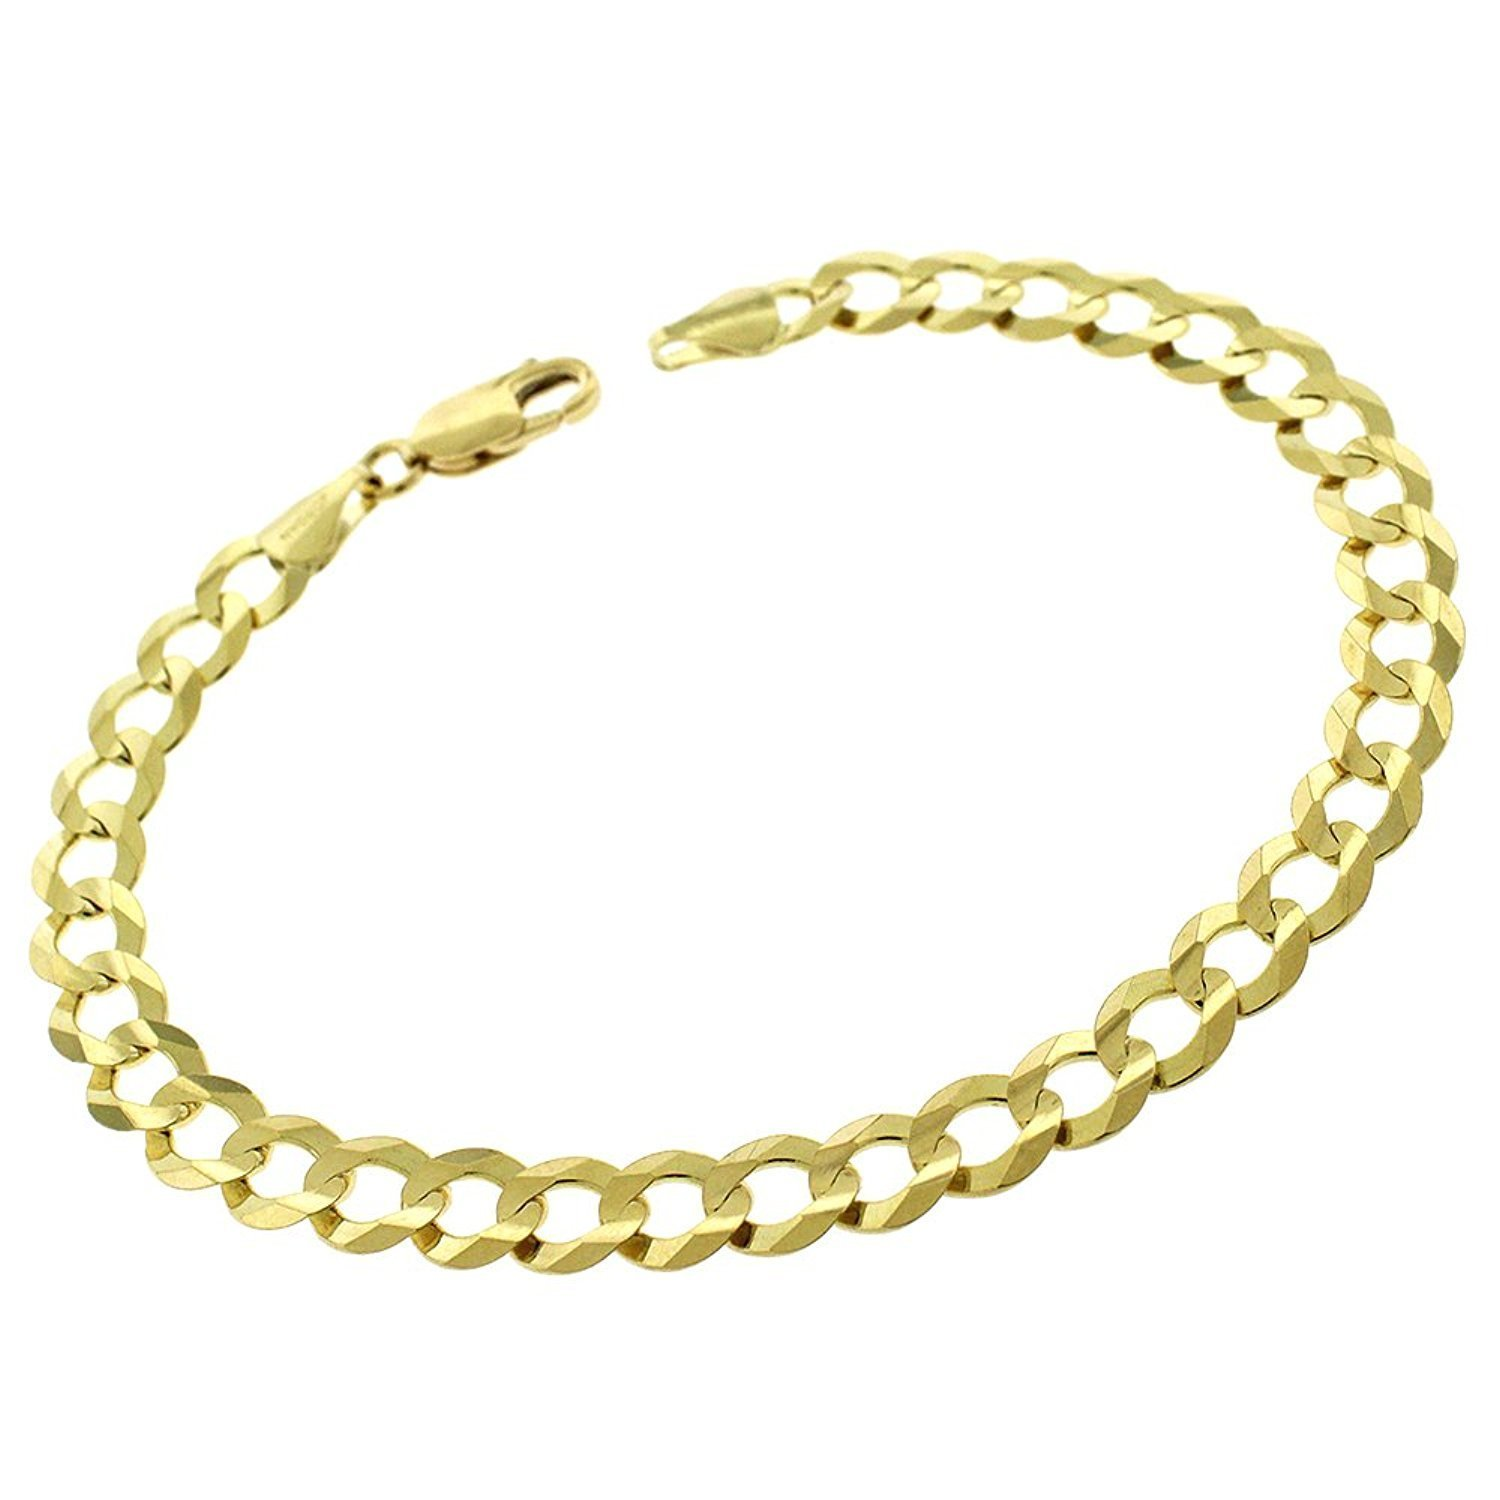 14k Yellow Gold 7mm Solid Cuban Curb Link Bracelet Chain 8'', 8.5'', 9'' (8.5)